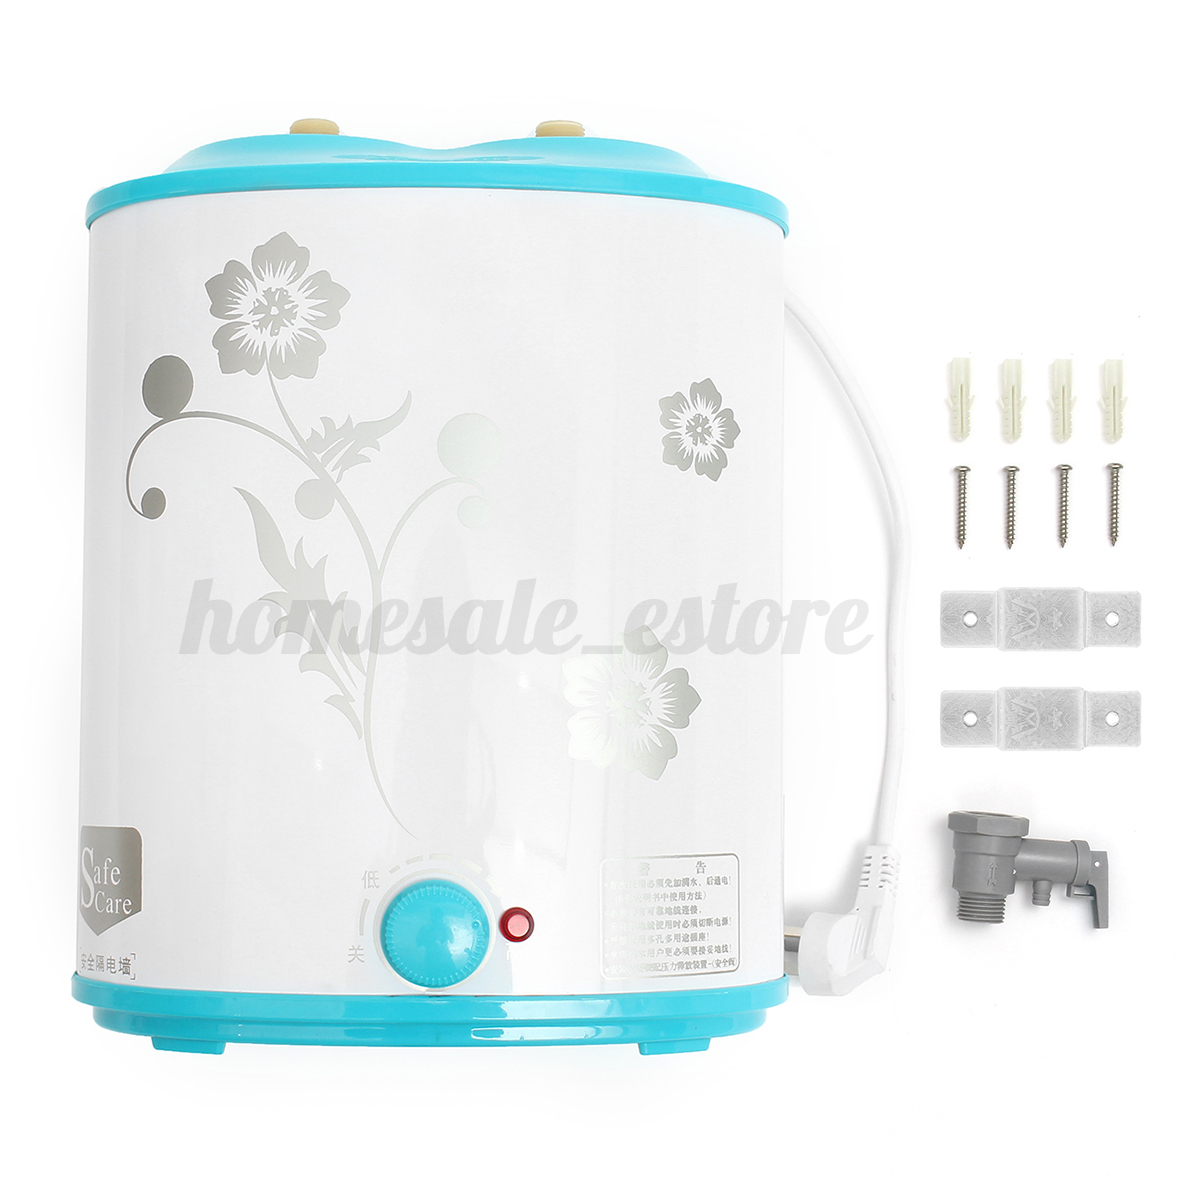 6l hot water storage heater portable tankless instant for 5 bathroom tankless water heater